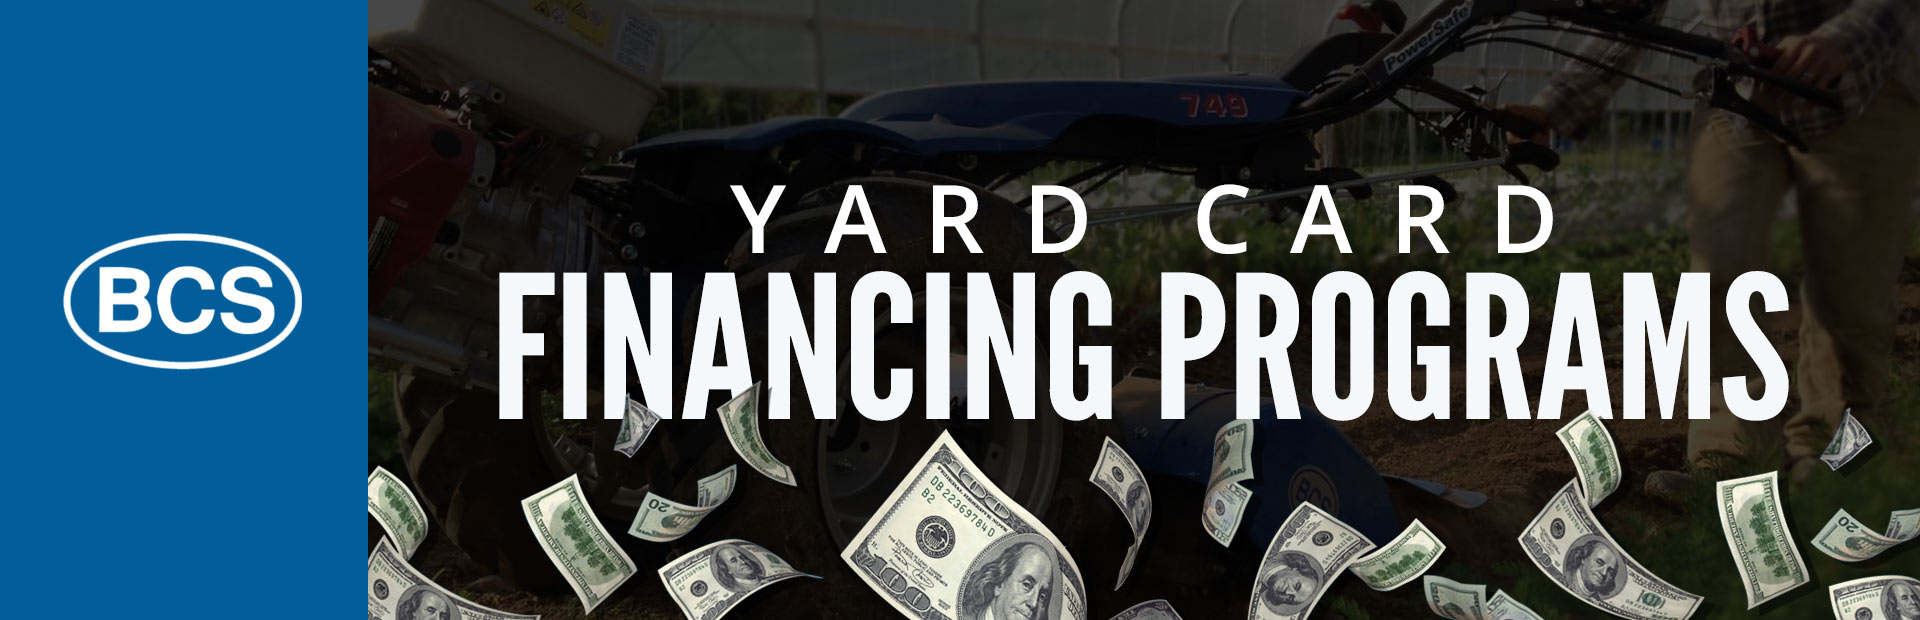 BCS America: Yard Card Financing Programs